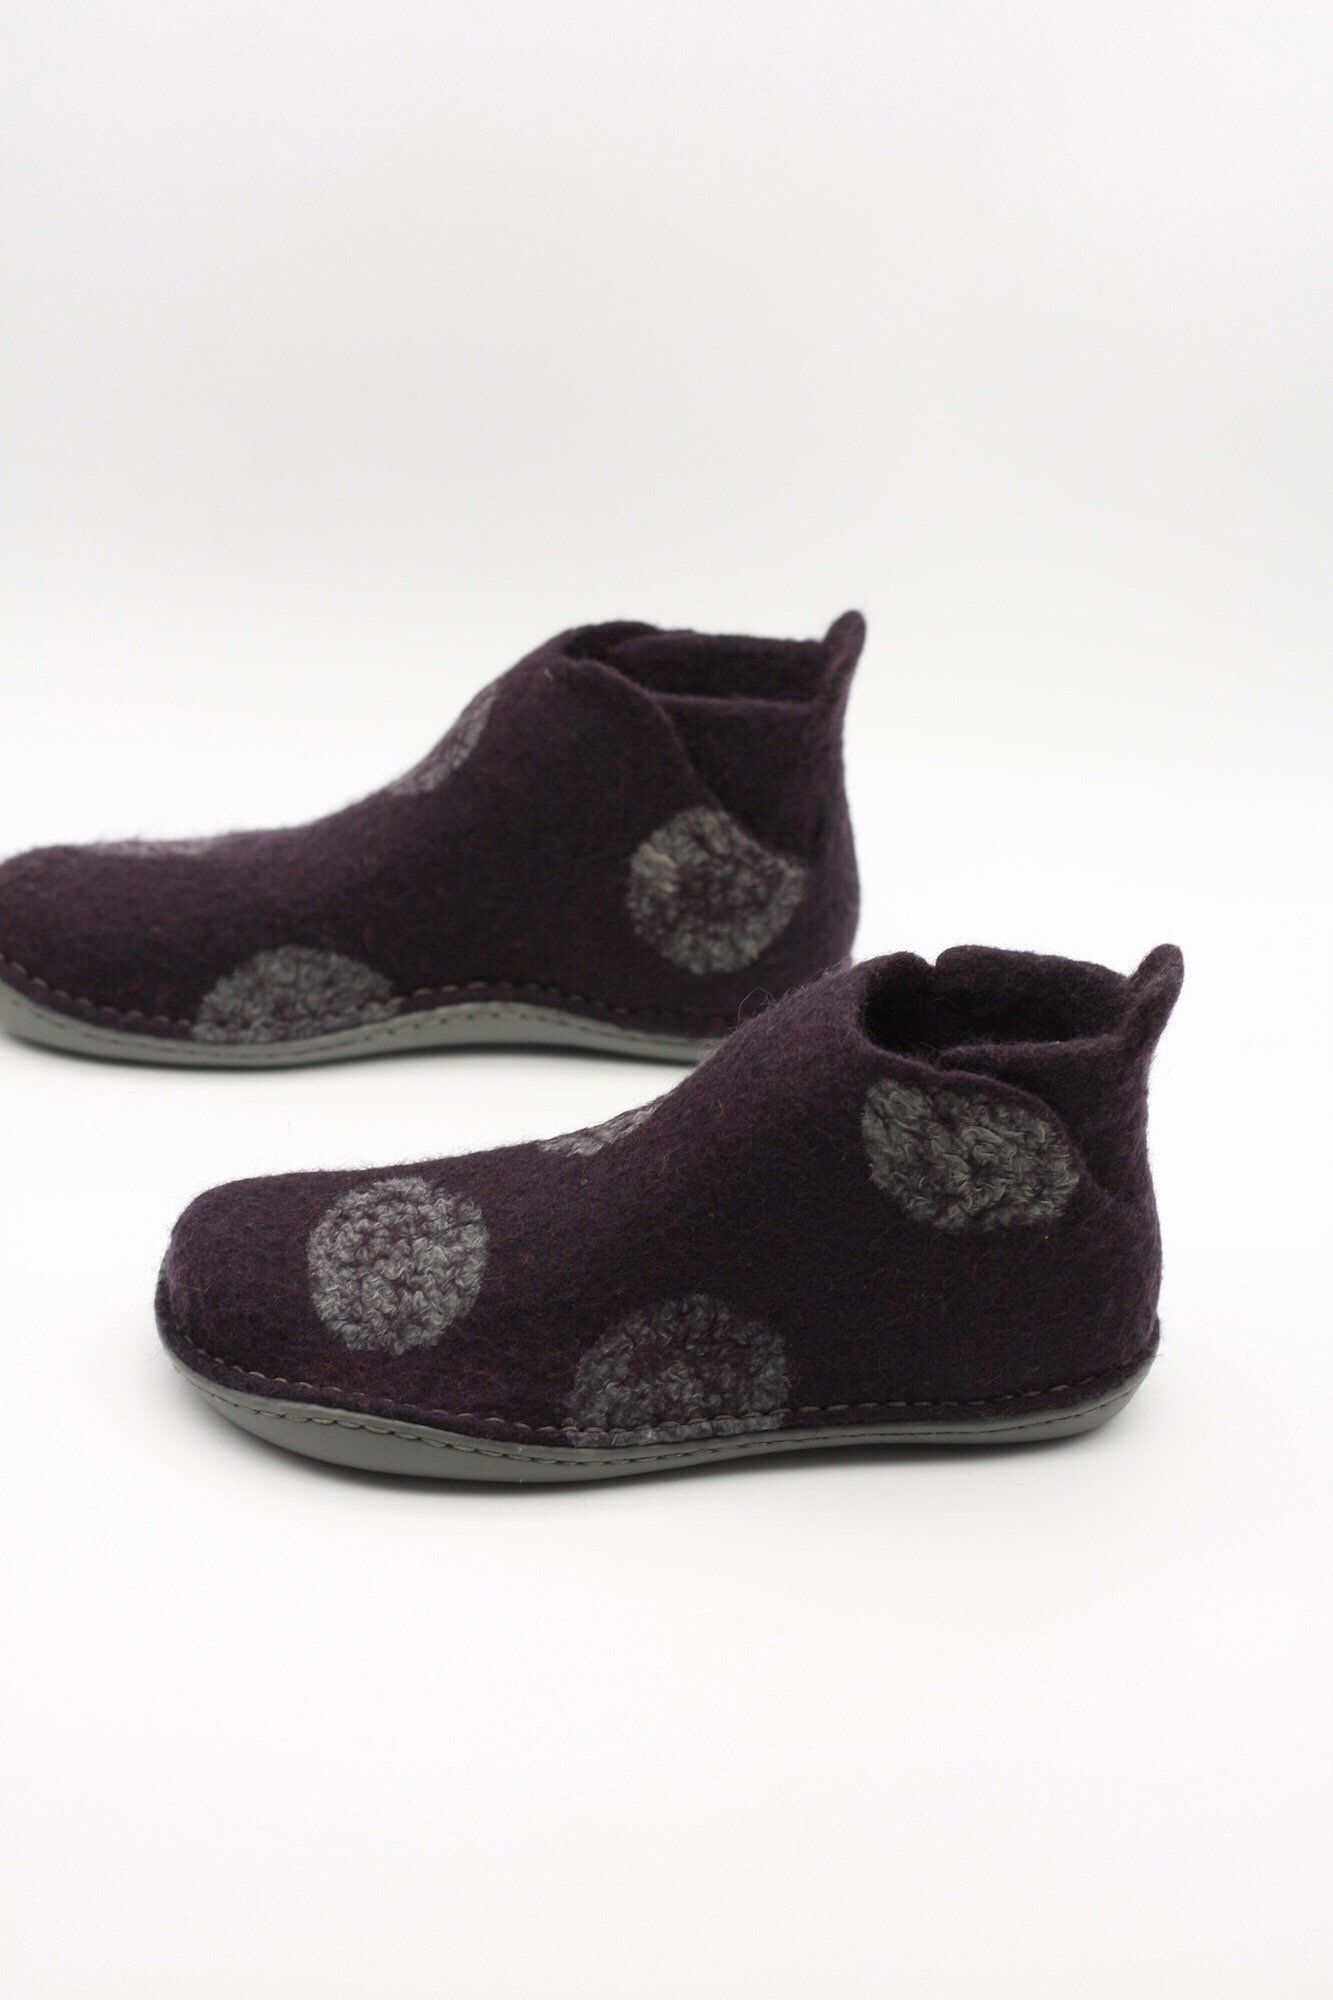 0ae51be45b4ae LUCIELALUNE /EU39 US8.5 UK6 /gray dots /dark ink ankle boots/ men ...